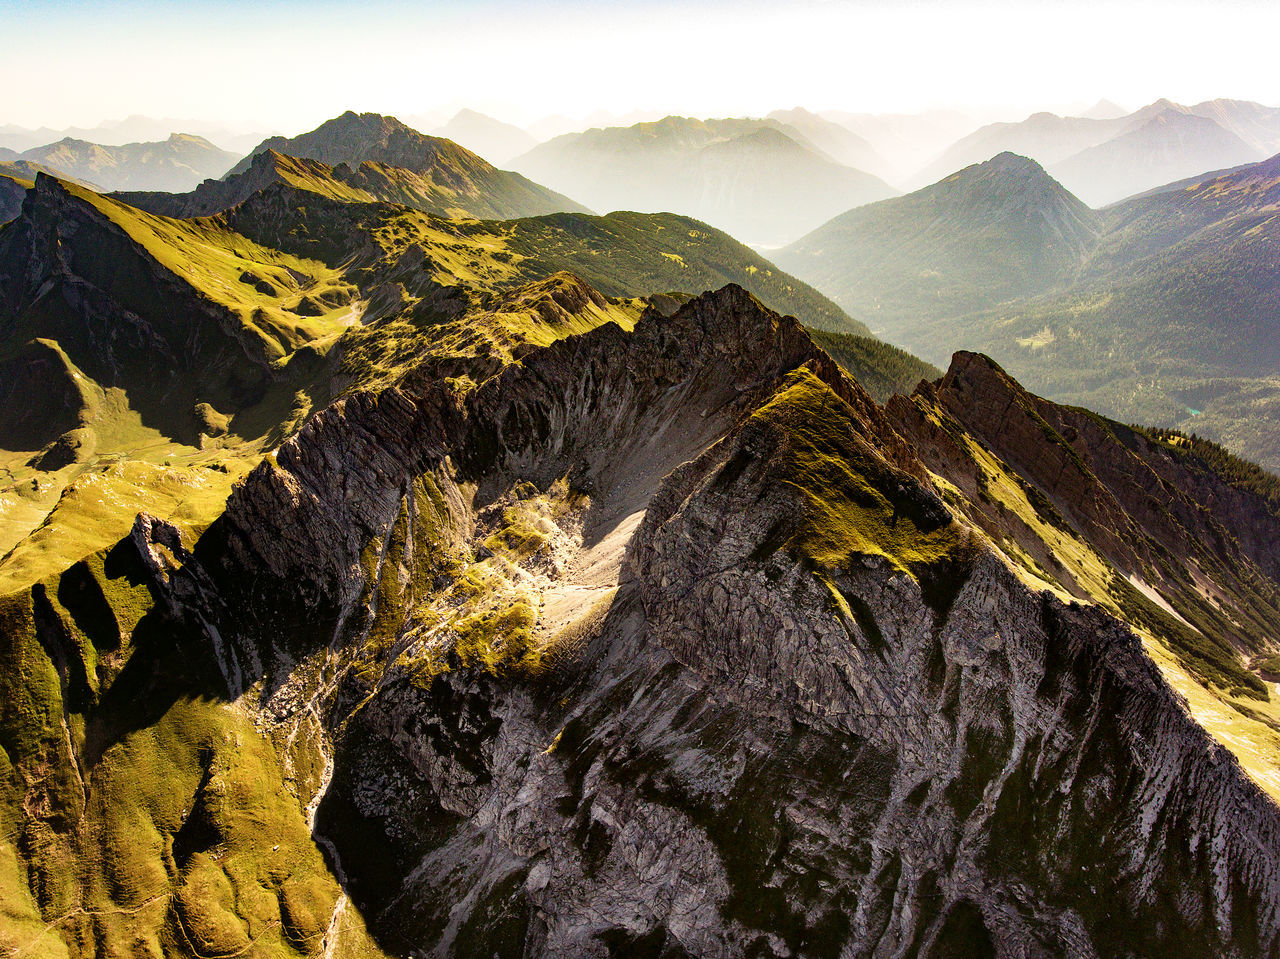 "Mountain range next to the famous ""schrecksee"" in Bayer, Germany. Allgäu Allgäuer Alpen Allgäuer Landschaft Alpes Bayern Bayern Germany Beauty In Nature Bird's Eye View Drone Landscape Dronephotography Droneshot Germany Hiking Landscape Landscape_photography Like A Bird Mountain Mountain Peak Mountain Range Nature No People Outdoors Phantom 4 View View From Above"